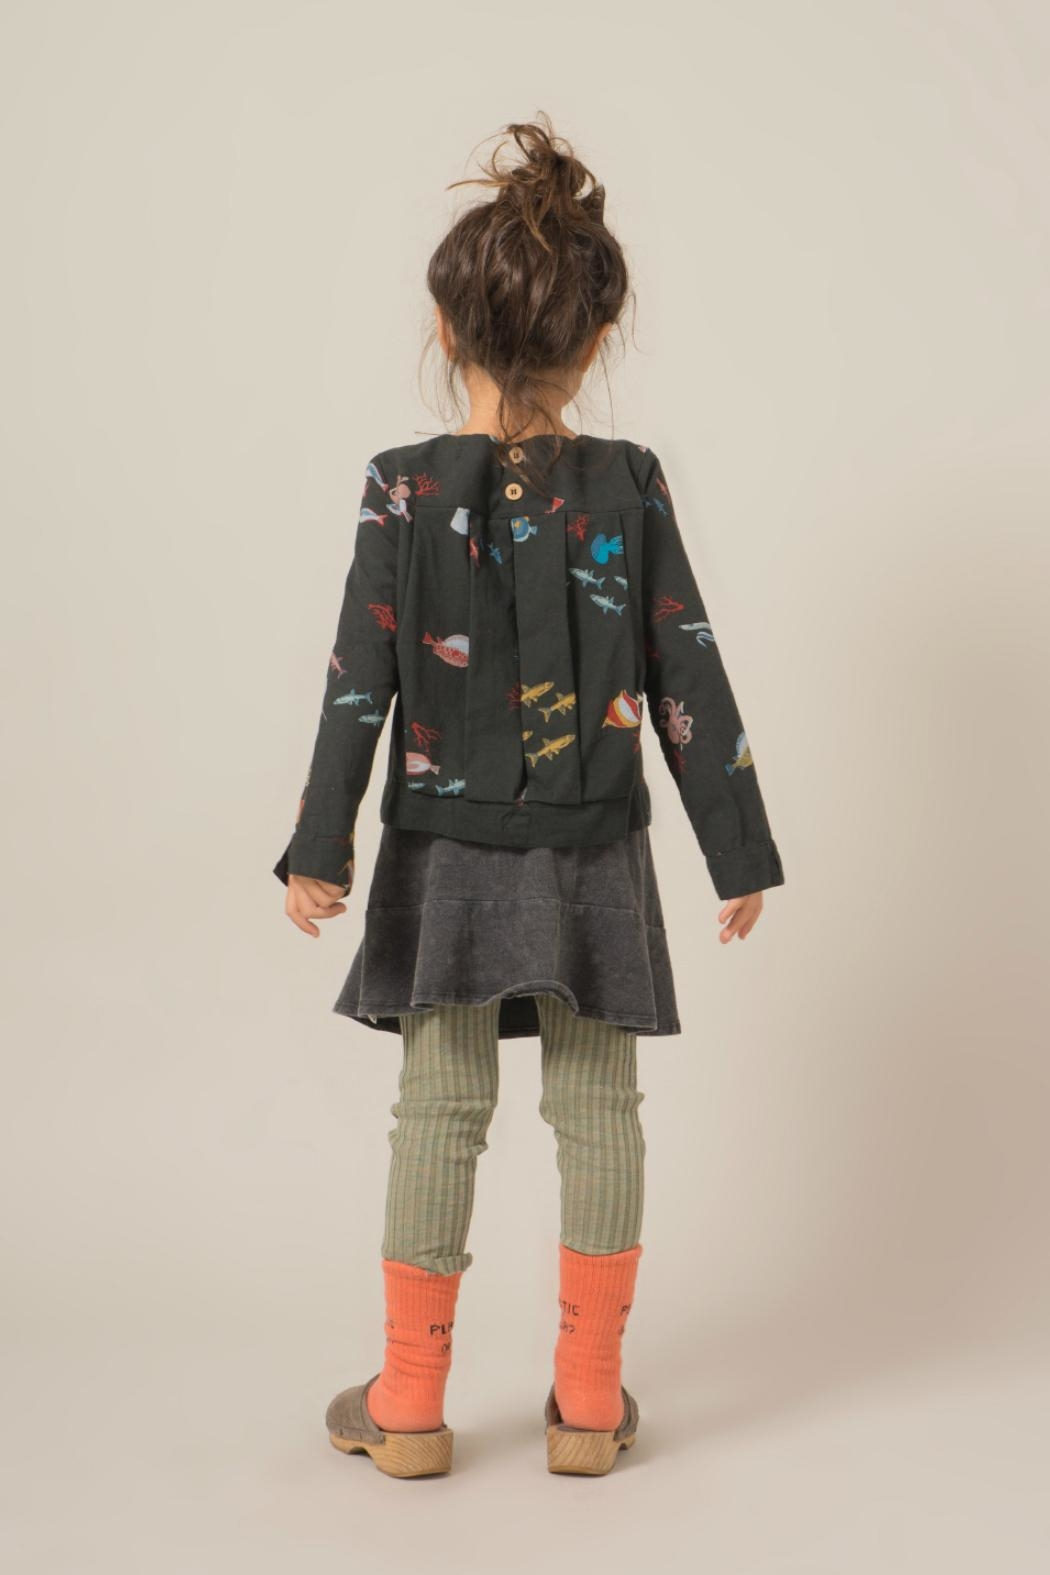 newest 546d8 4209e Bobo Choses Deep Sea Blouse from Ireland by Mira Mira ...